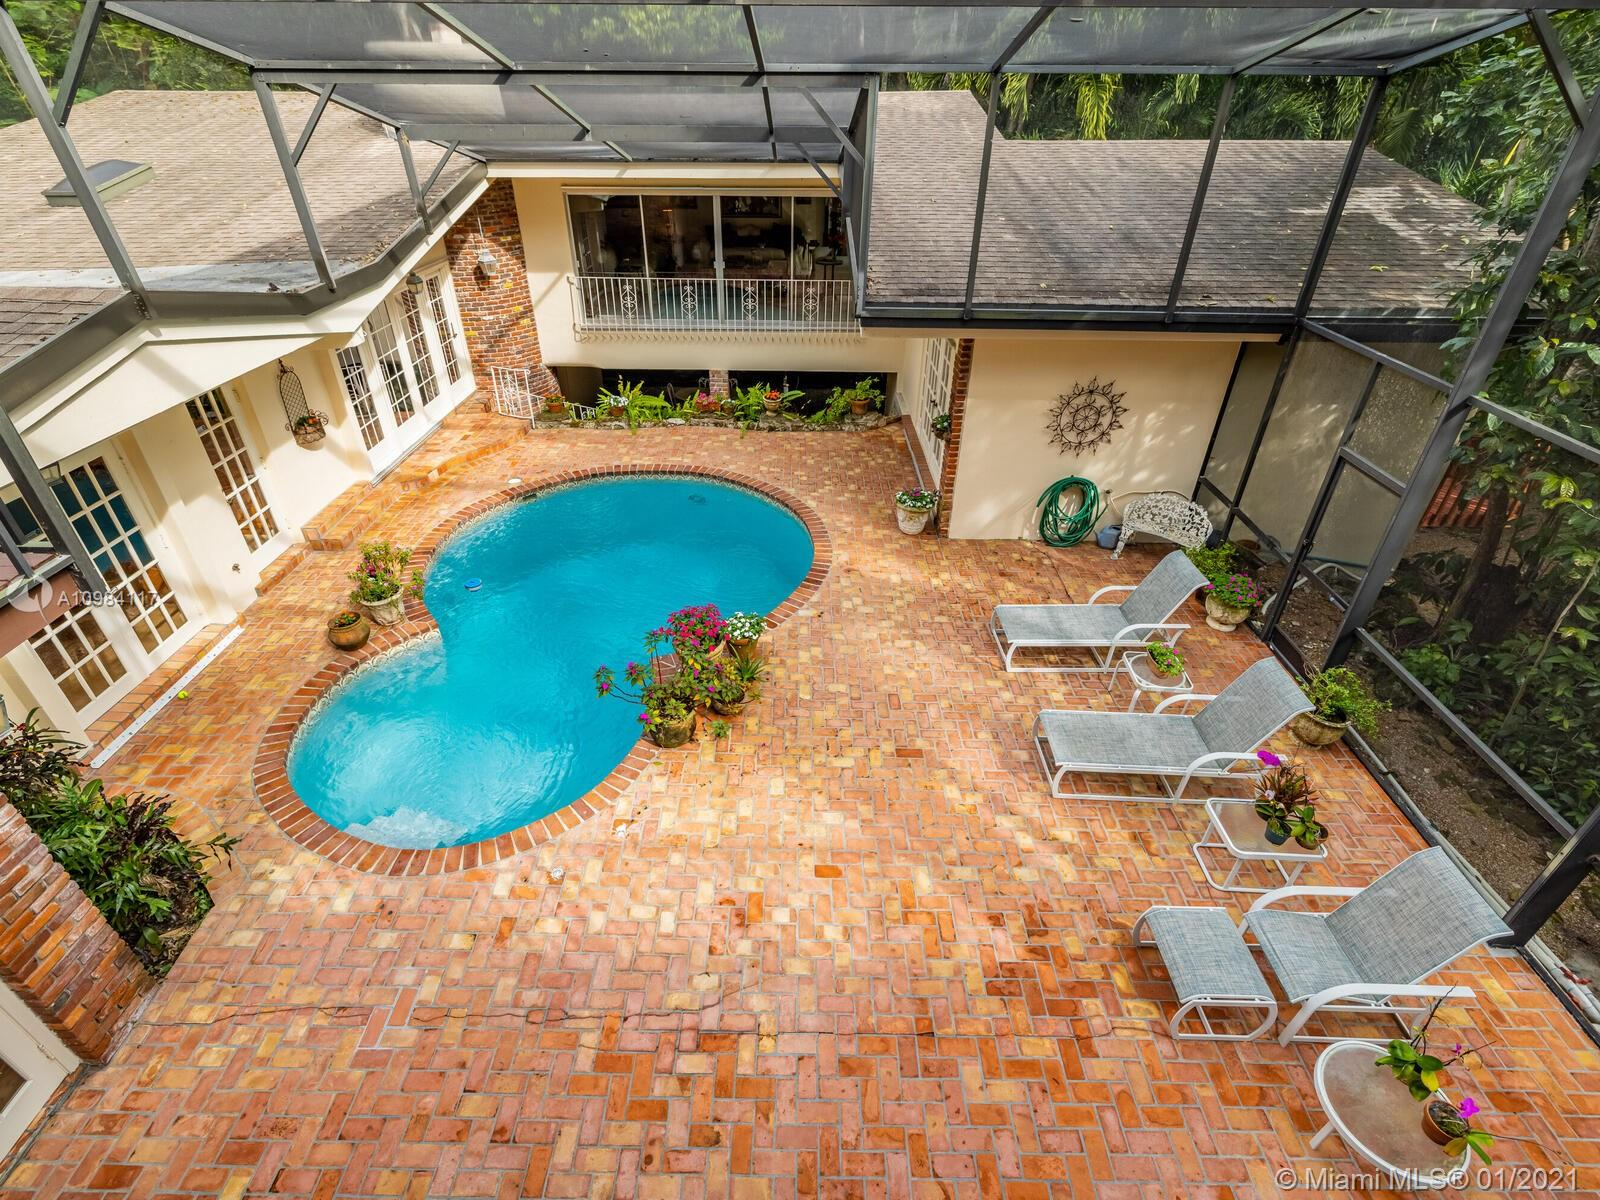 6520 SW 134th Dr, Pinecrest, Florida 33156, 4 Bedrooms Bedrooms, ,3 BathroomsBathrooms,Residential,For Sale,6520 SW 134th Dr,A10984117